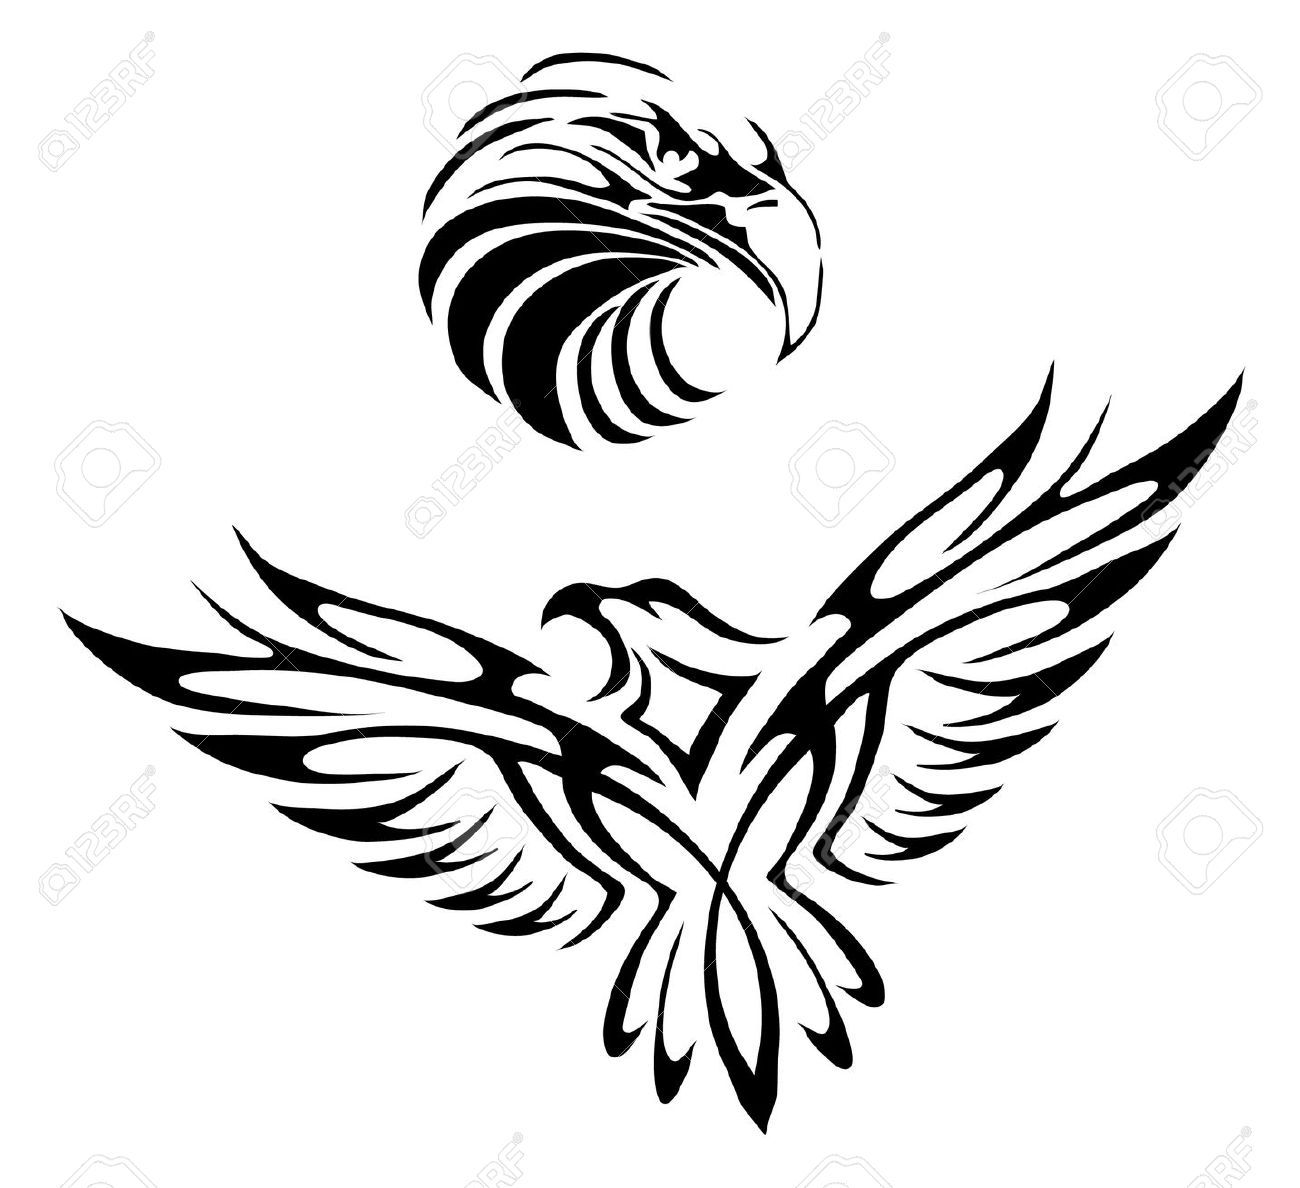 Hawk Silhouette Stock Illustrations Cliparts And Royalty